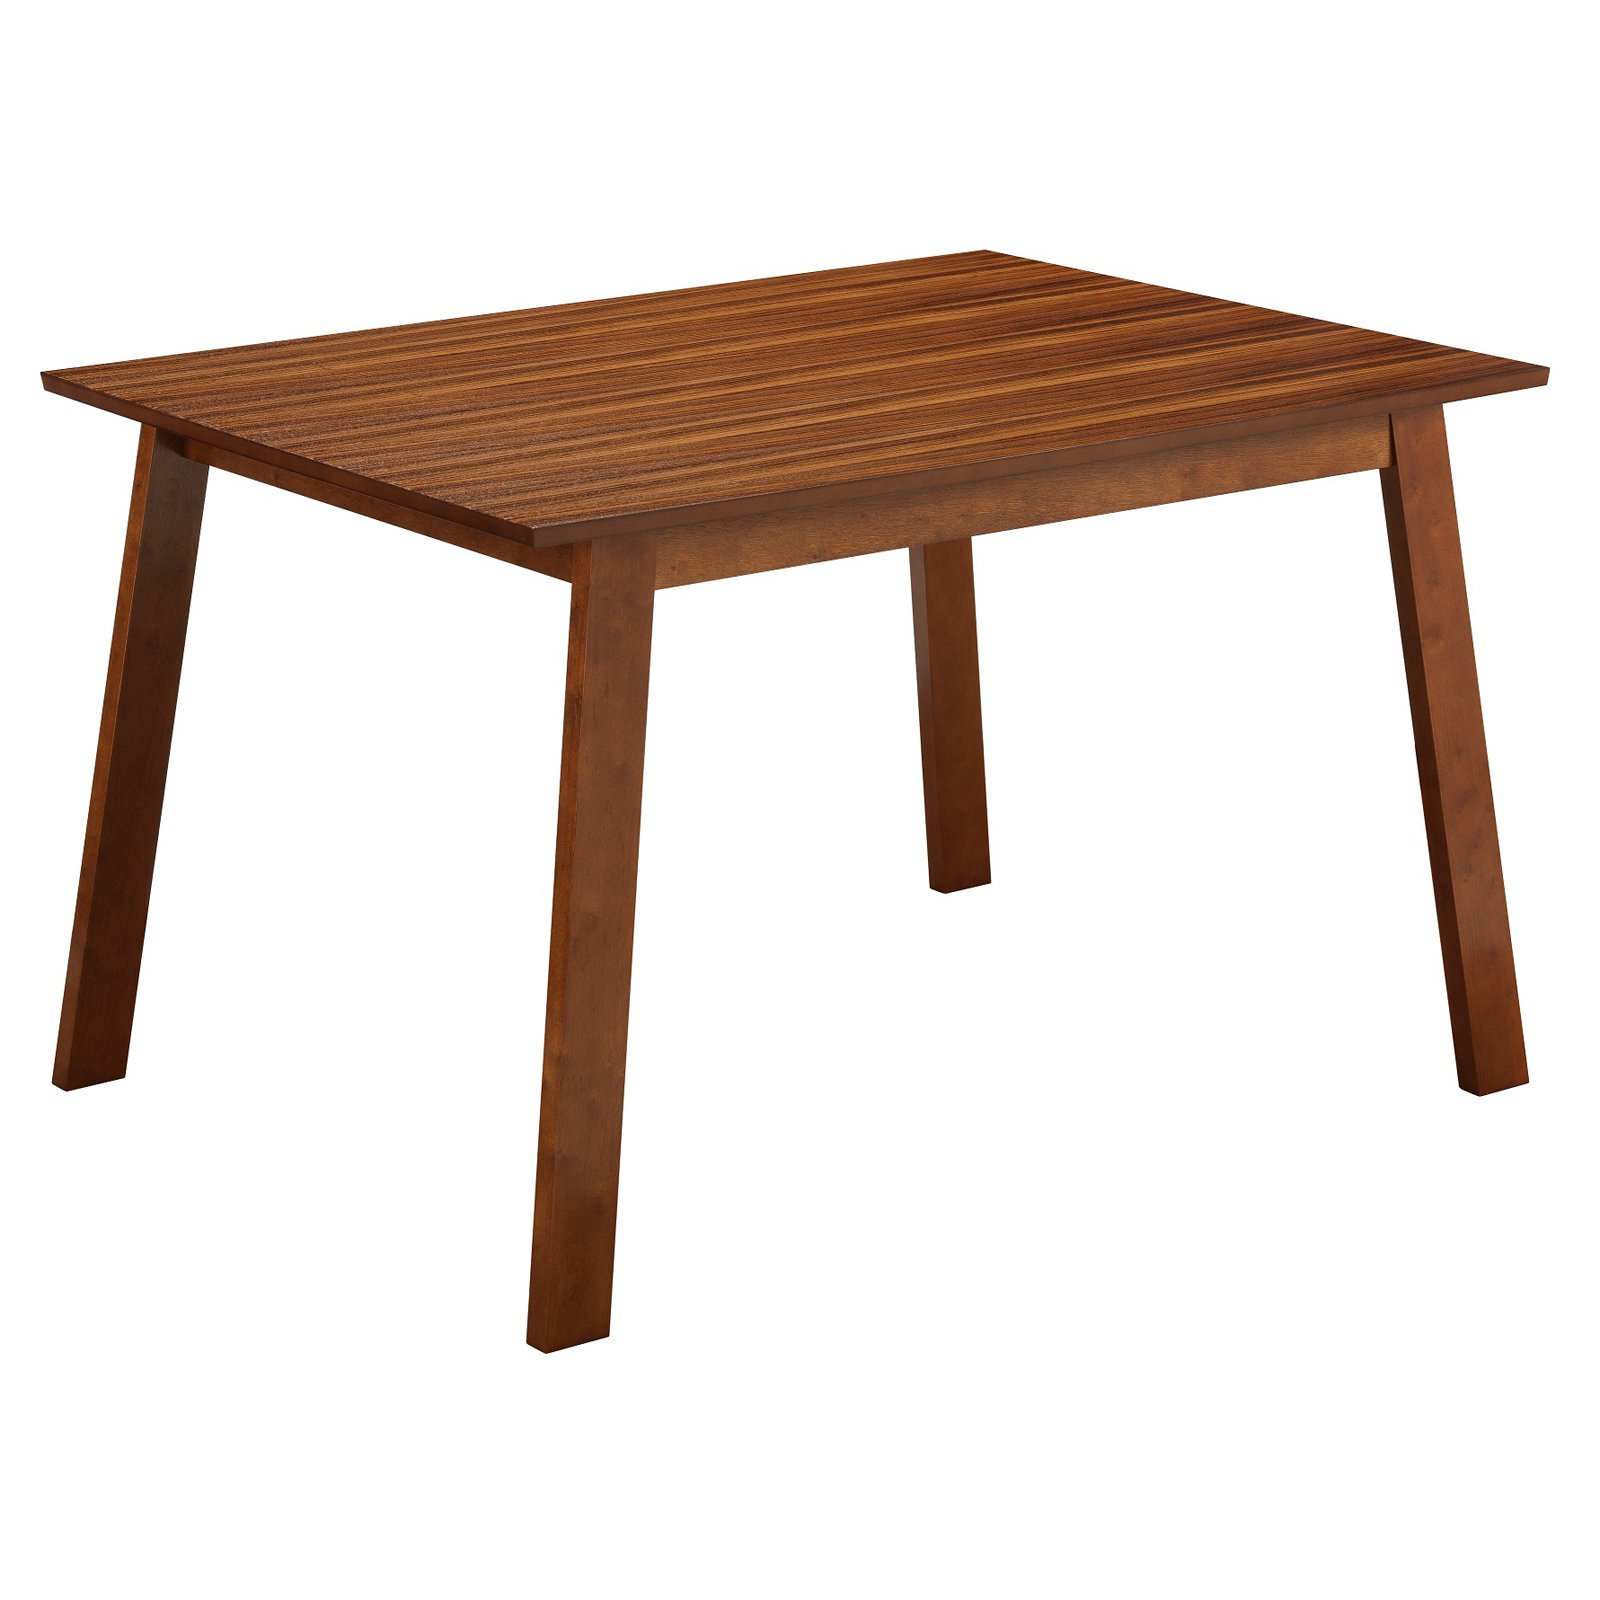 Boraam Zebra Series Hagen Dining Table, Walnut